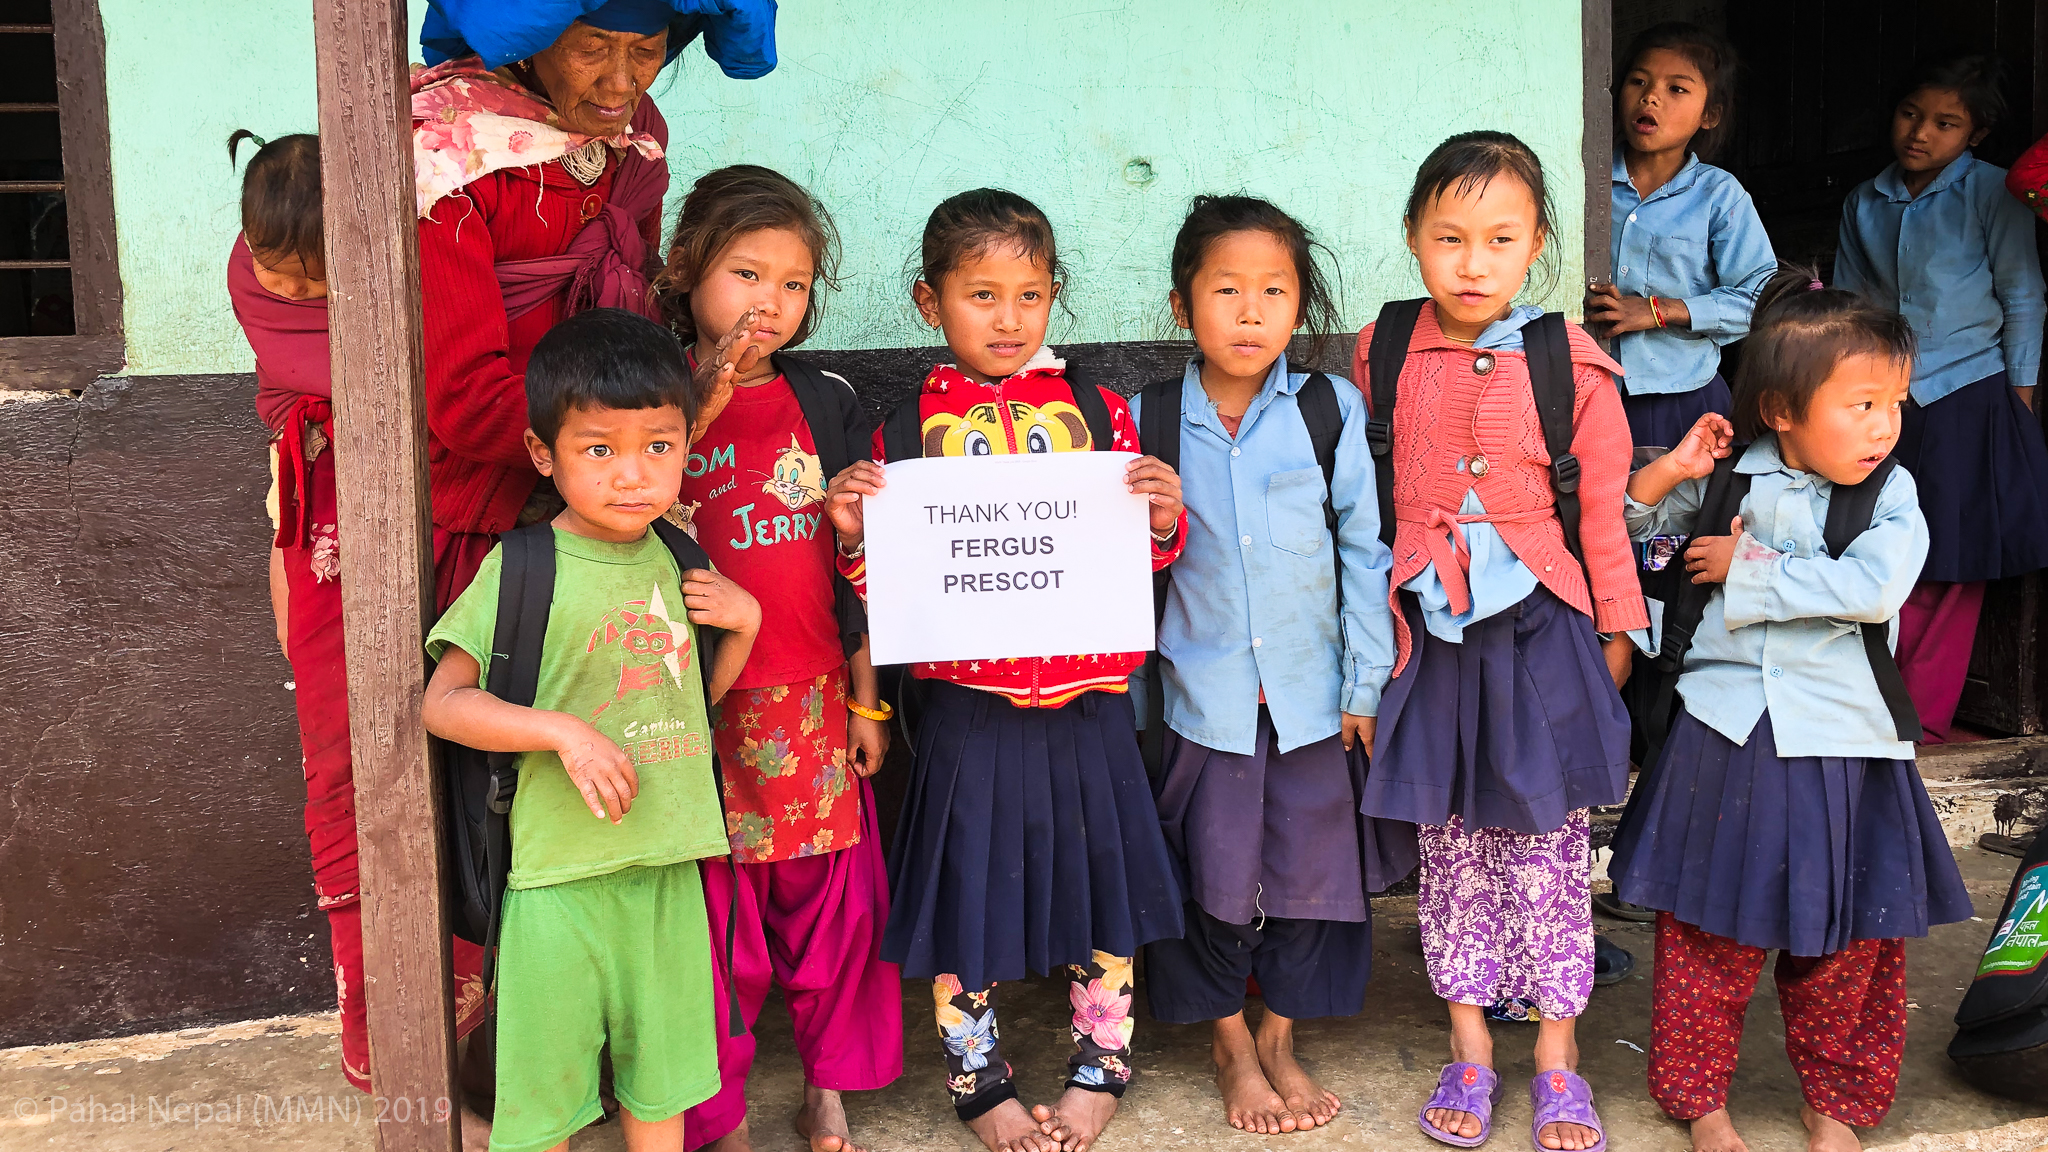 Moving Mountain Nepal have a tradition of thanking individual sponsors since we began in 2015. Each get sent an image of the children their donation has sponsored.